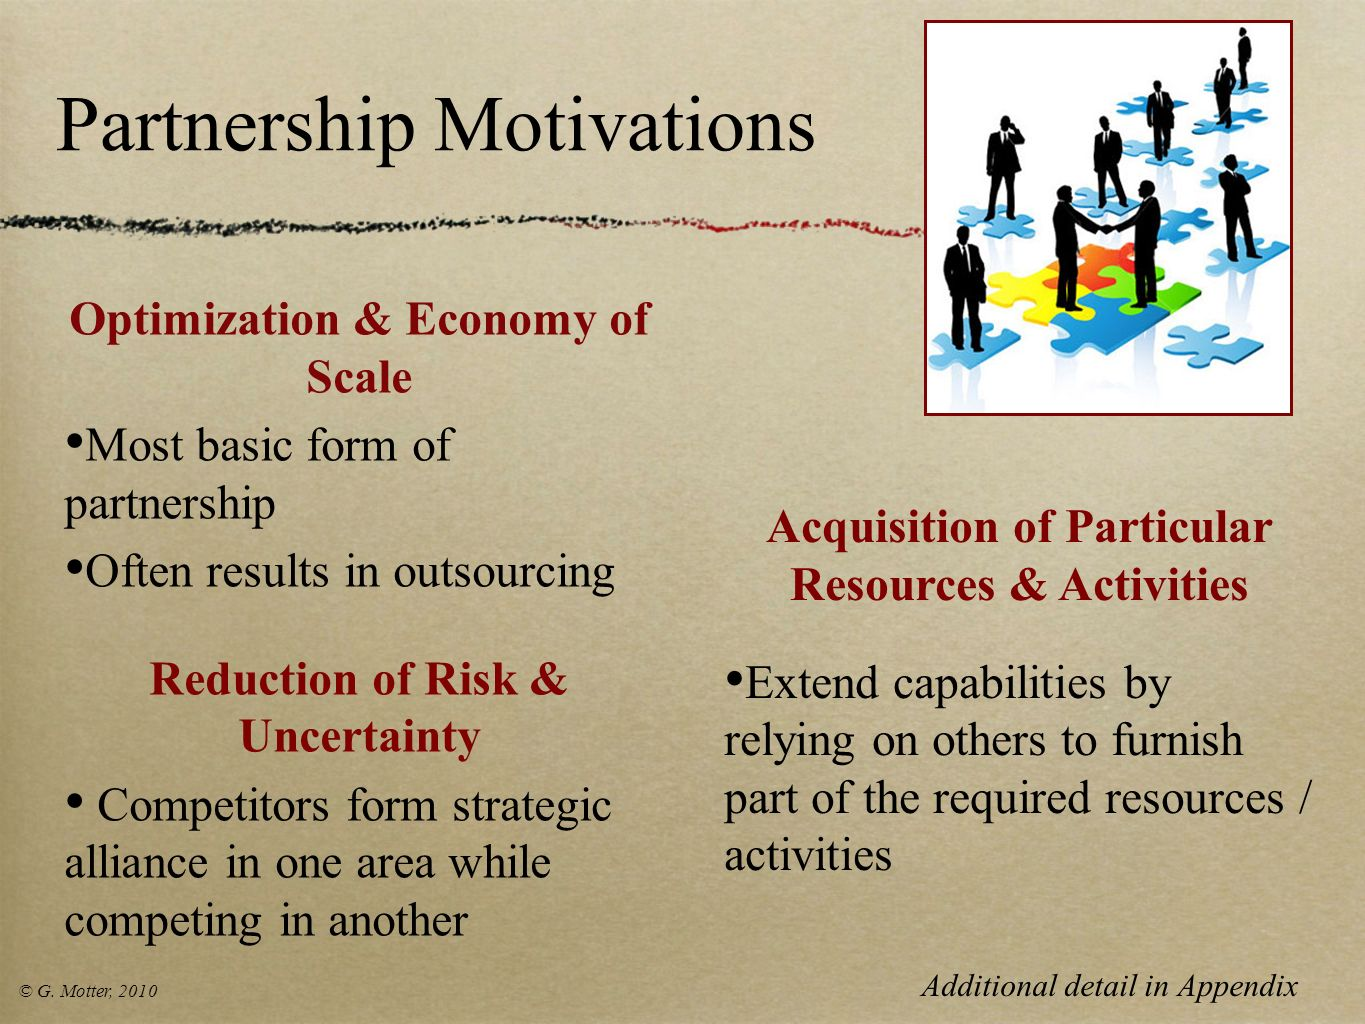 Partnership Motivations